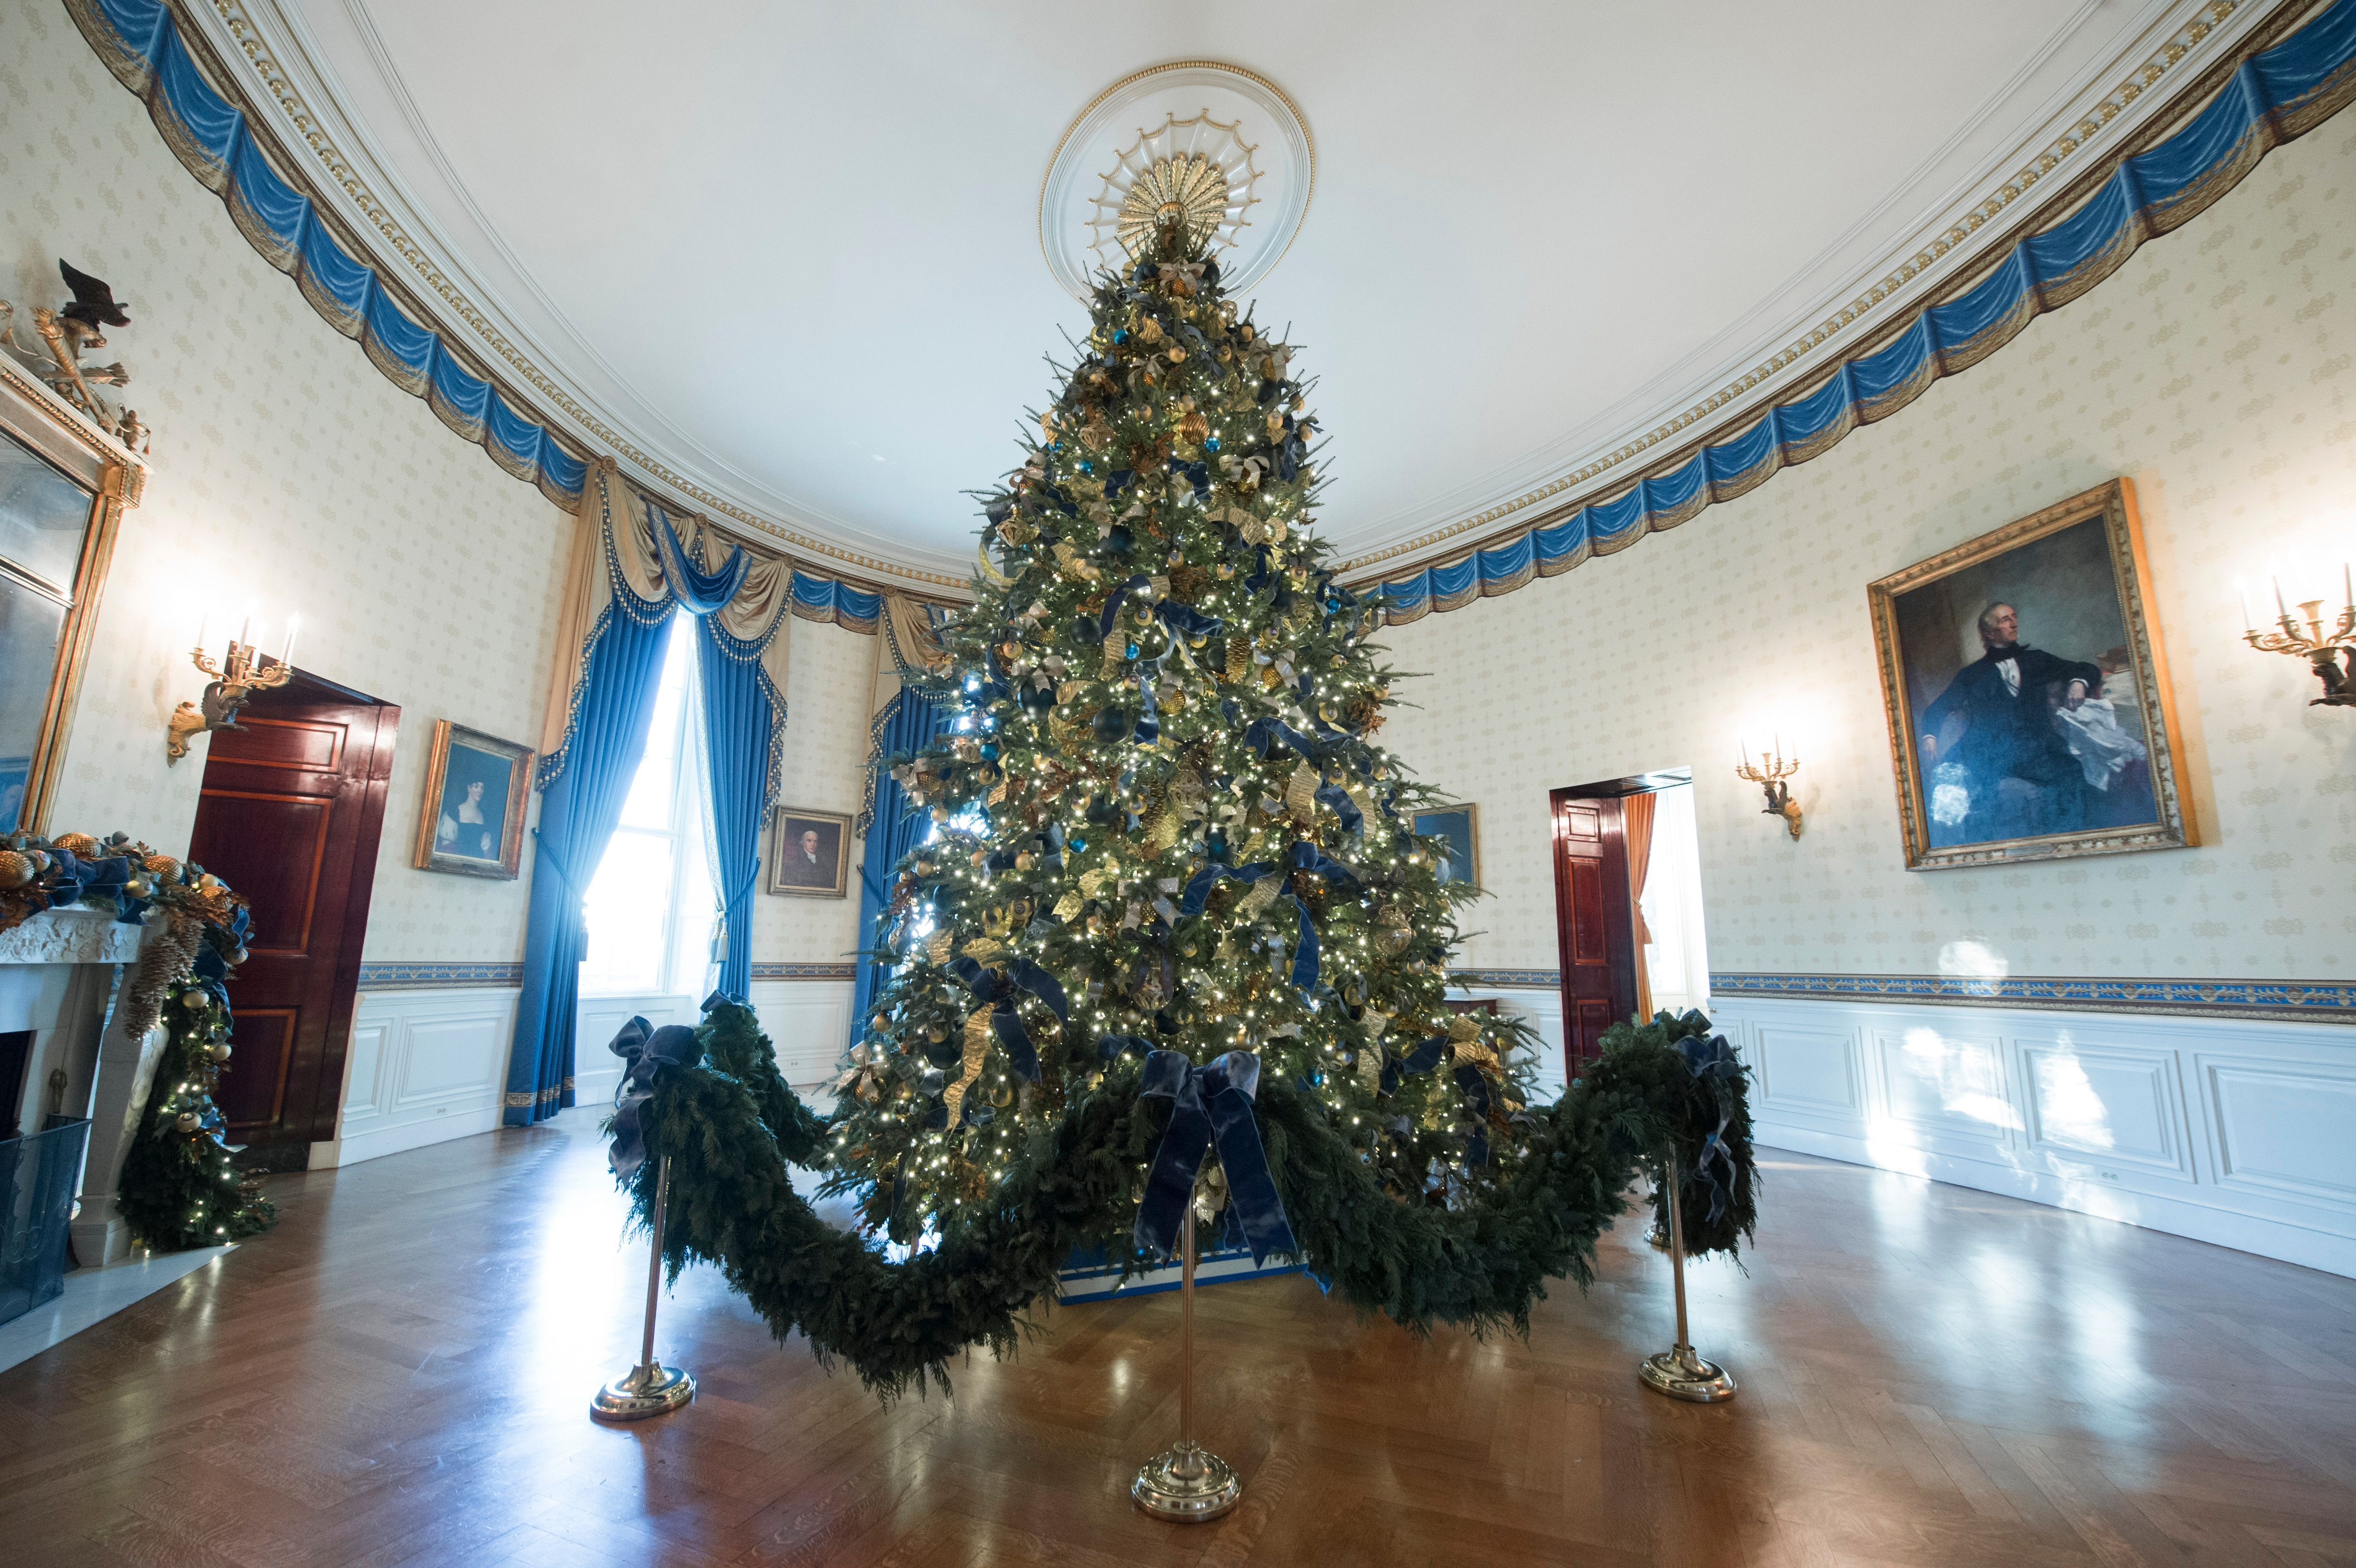 holiday afp decorations decor my christmas bathroom dogs obama getty michelle unveils web house white value